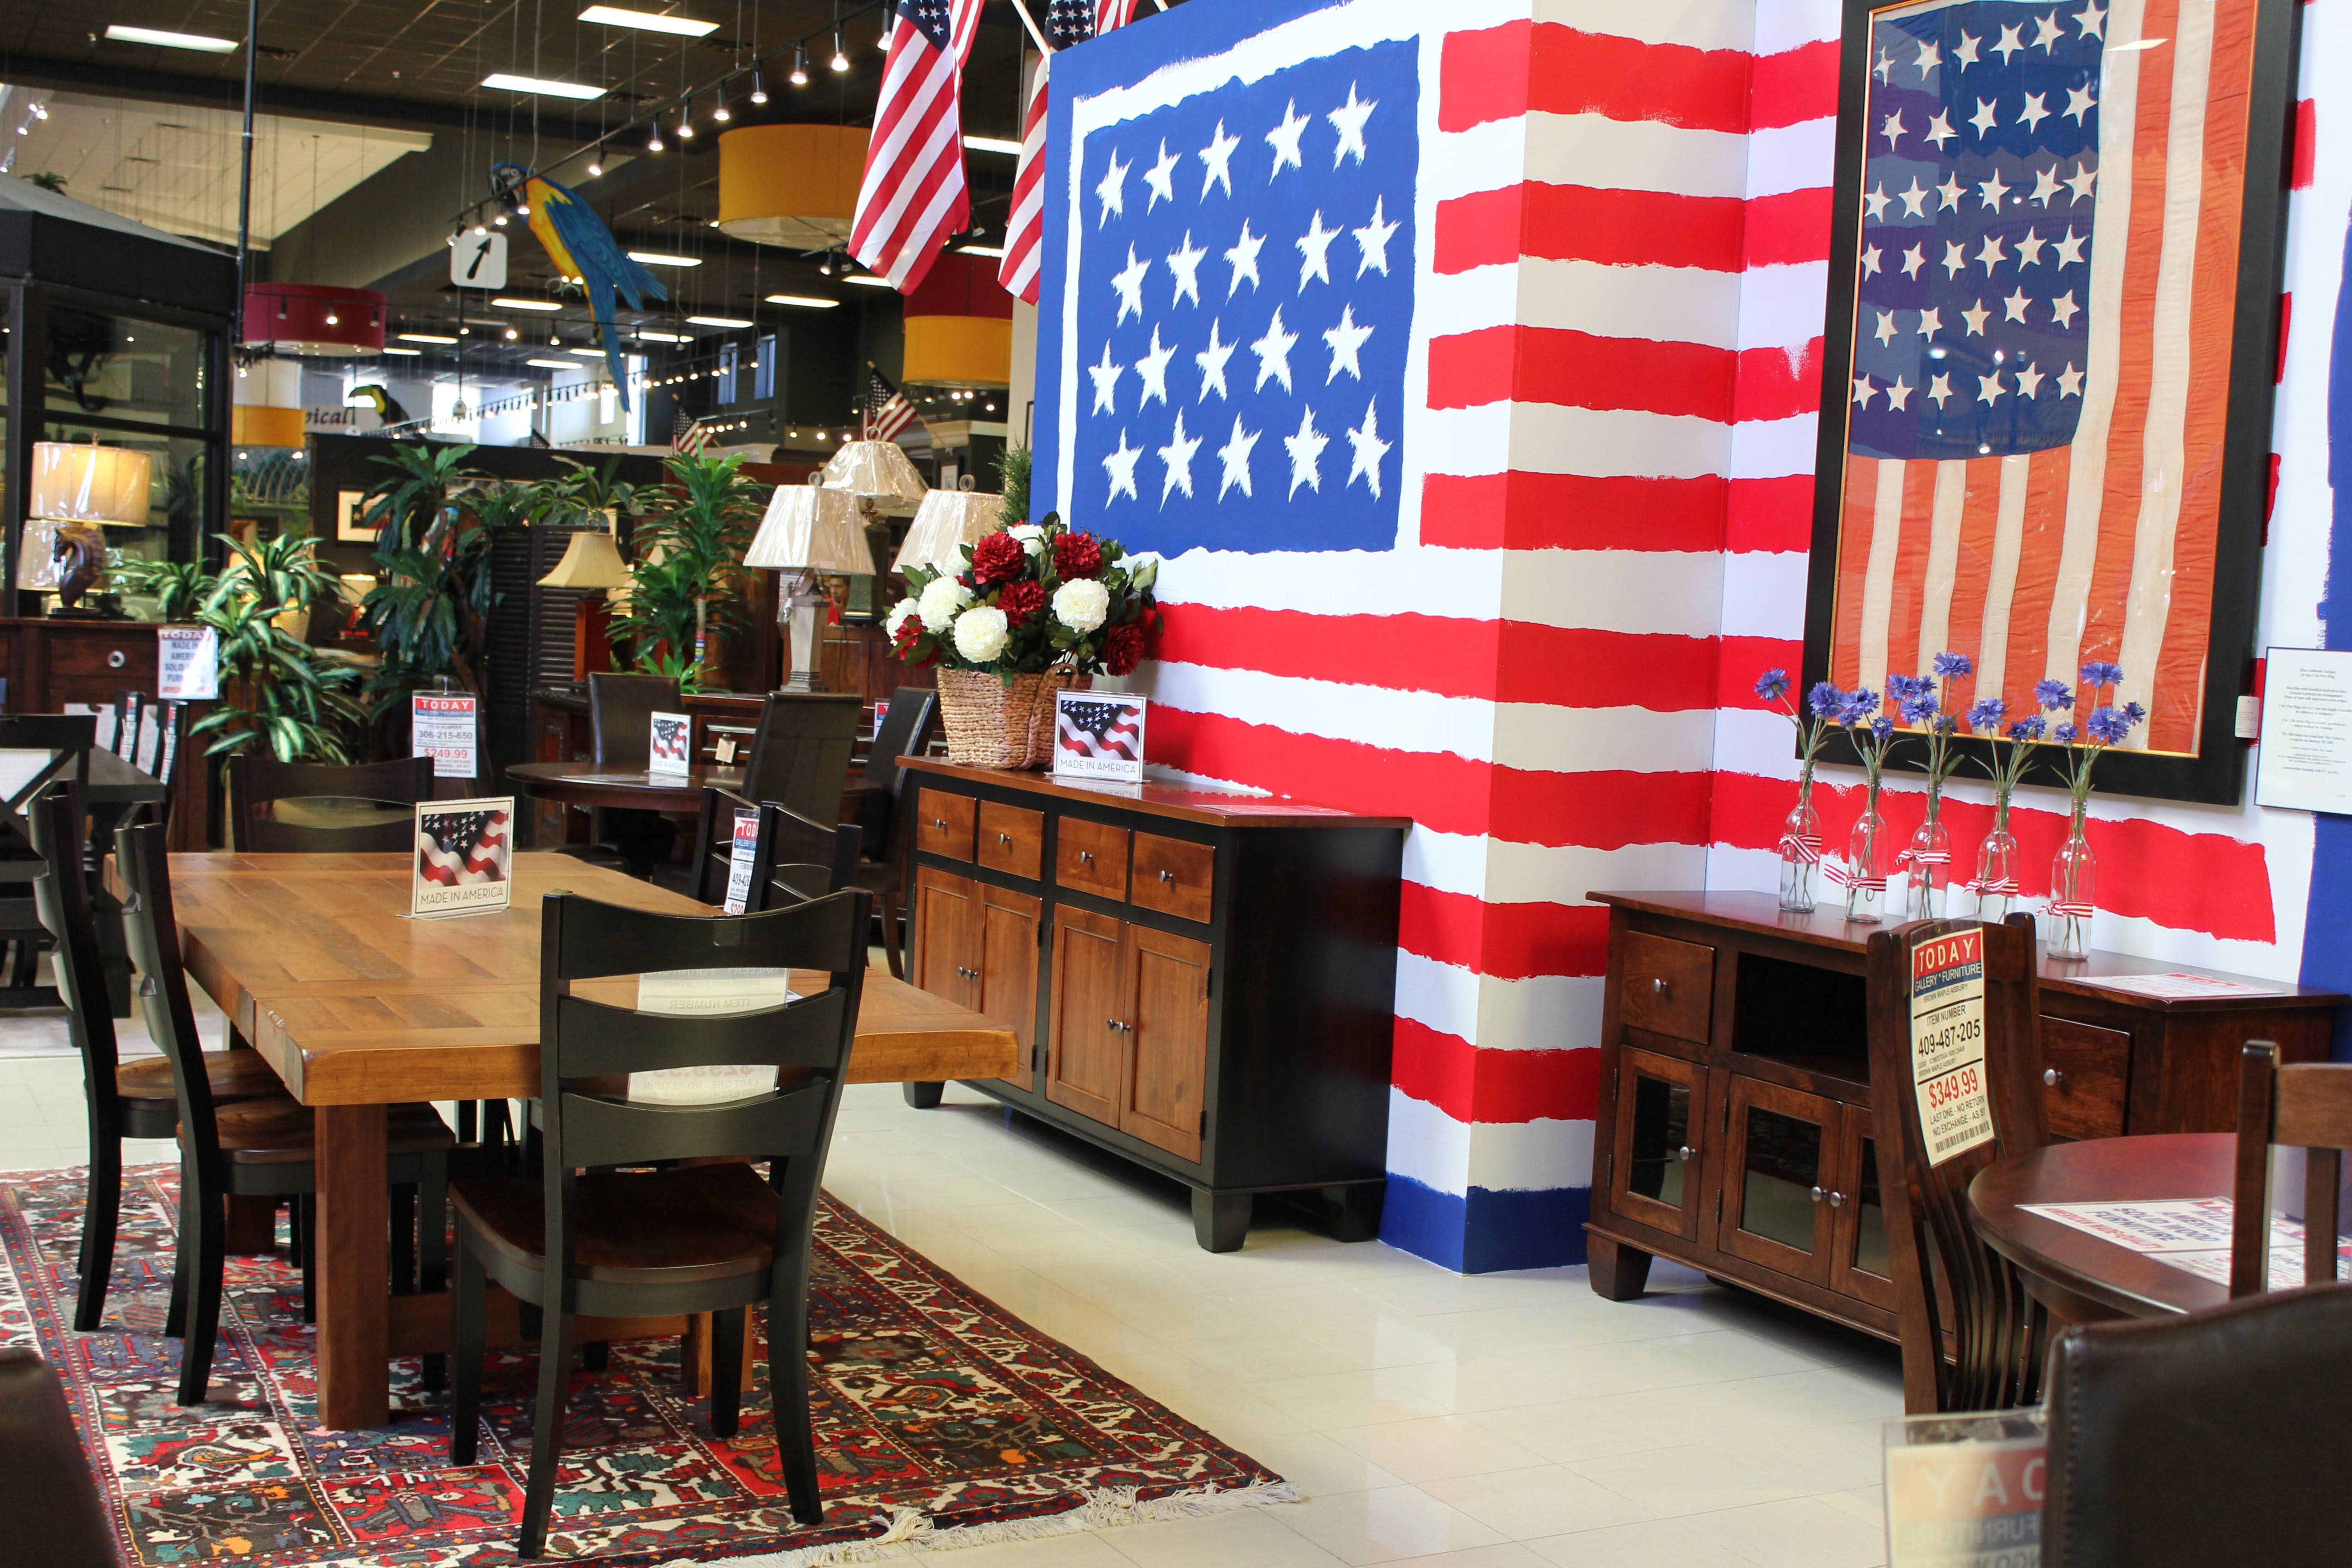 galleryfurniture.com - At Gallery Furniture We Believe In Supporting American Made Furniture And Jobs